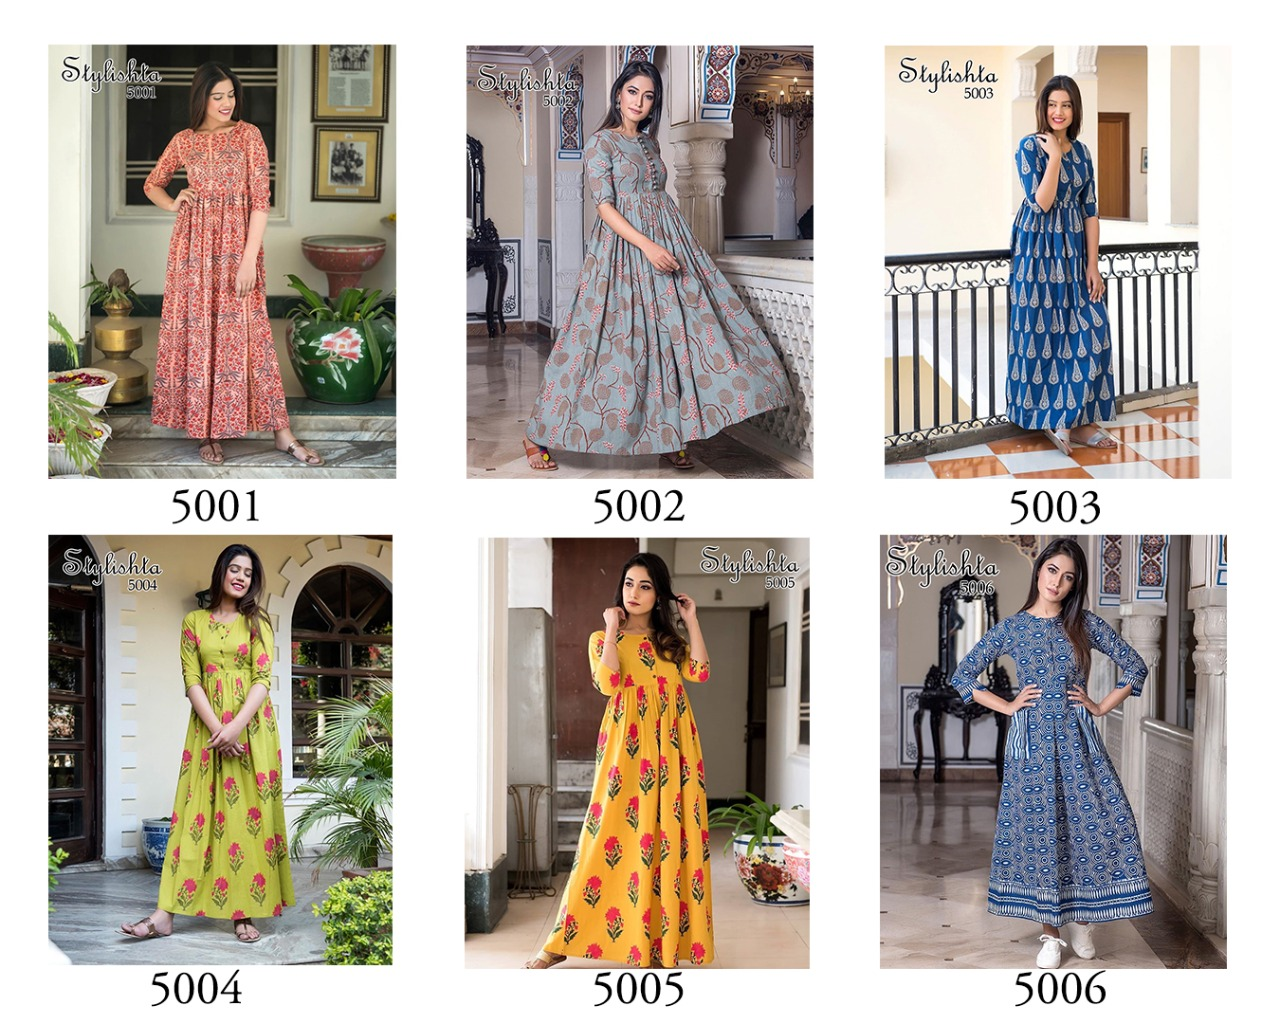 Tejaswee Stylishta Vol 3 Kurti Wholesale Catalog 6 Pcs 20 - Tejaswee Stylishta Vol 3 Kurti Wholesale Catalog 6 Pcs